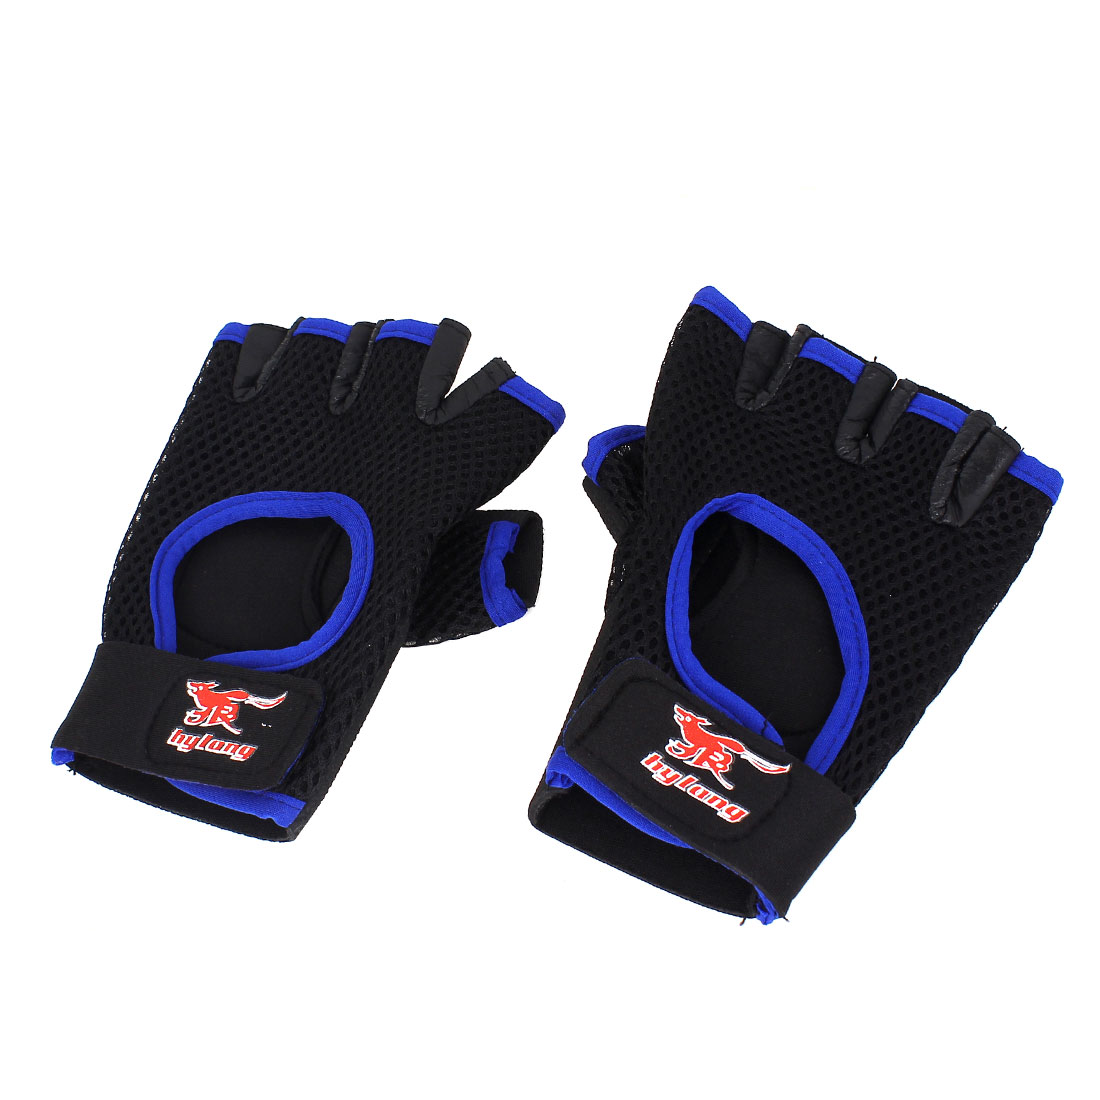 Outdoor Sports Gym Neoprene Palm Fingerless Gloves Wrist Protector Wrap Brace Pair